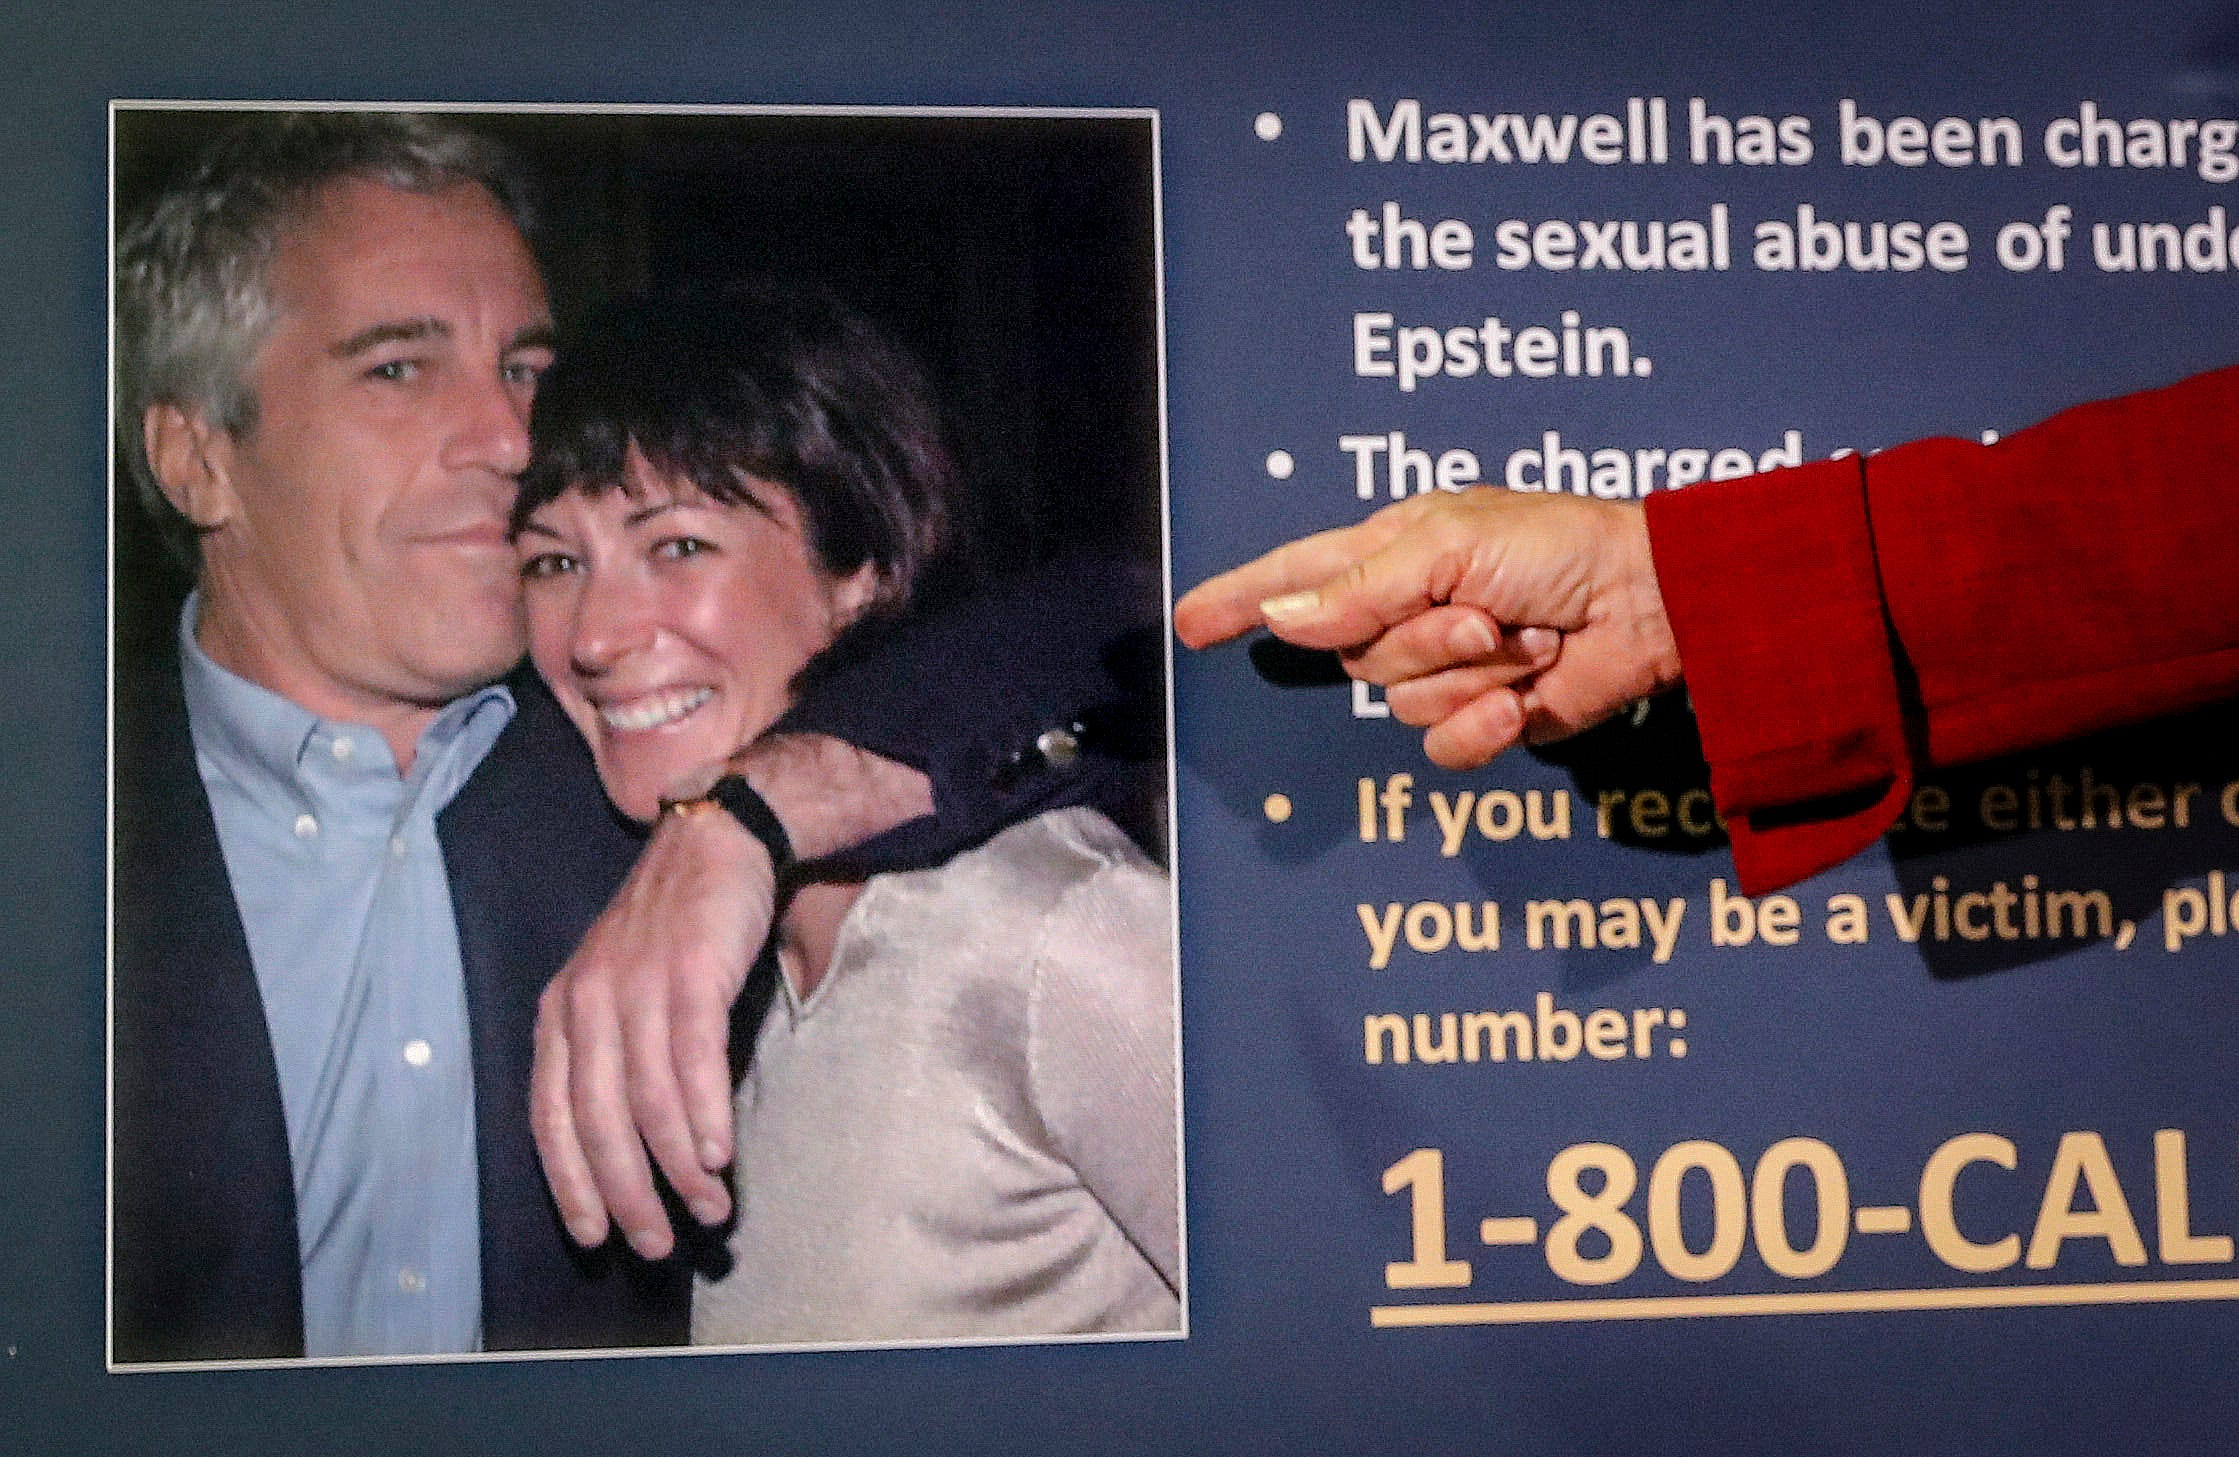 Lawsuit alleges woman was raped at Naples hotel by Jeffrey Epstein and Ghislaine Maxwell in 2008 3